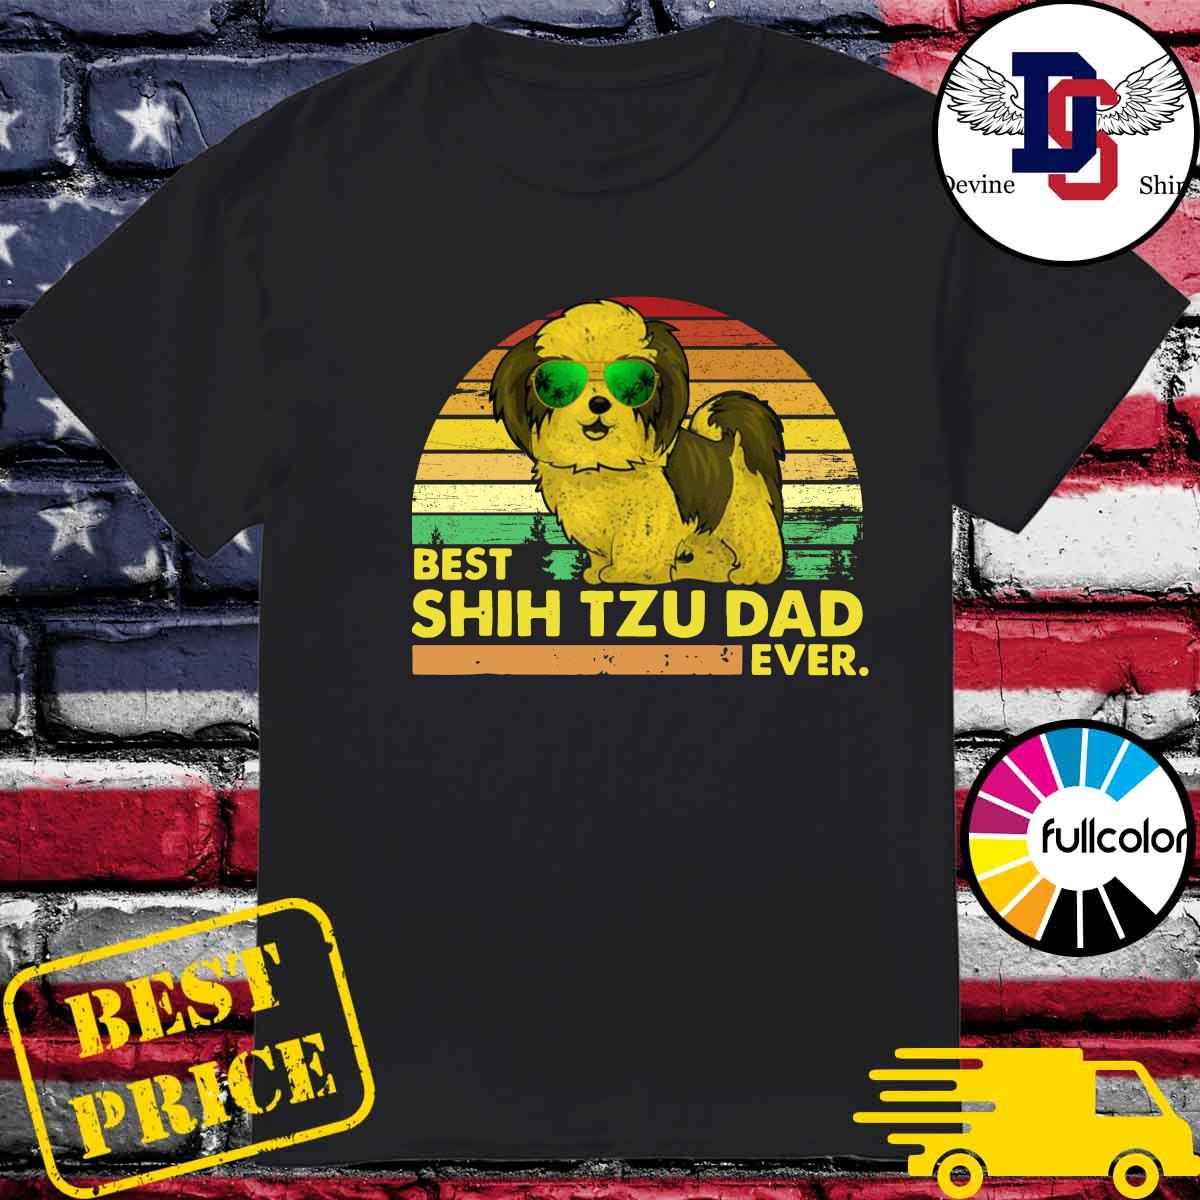 Official Vintage Retro Best Shih Tzu Dad Ever 2021 Shirt